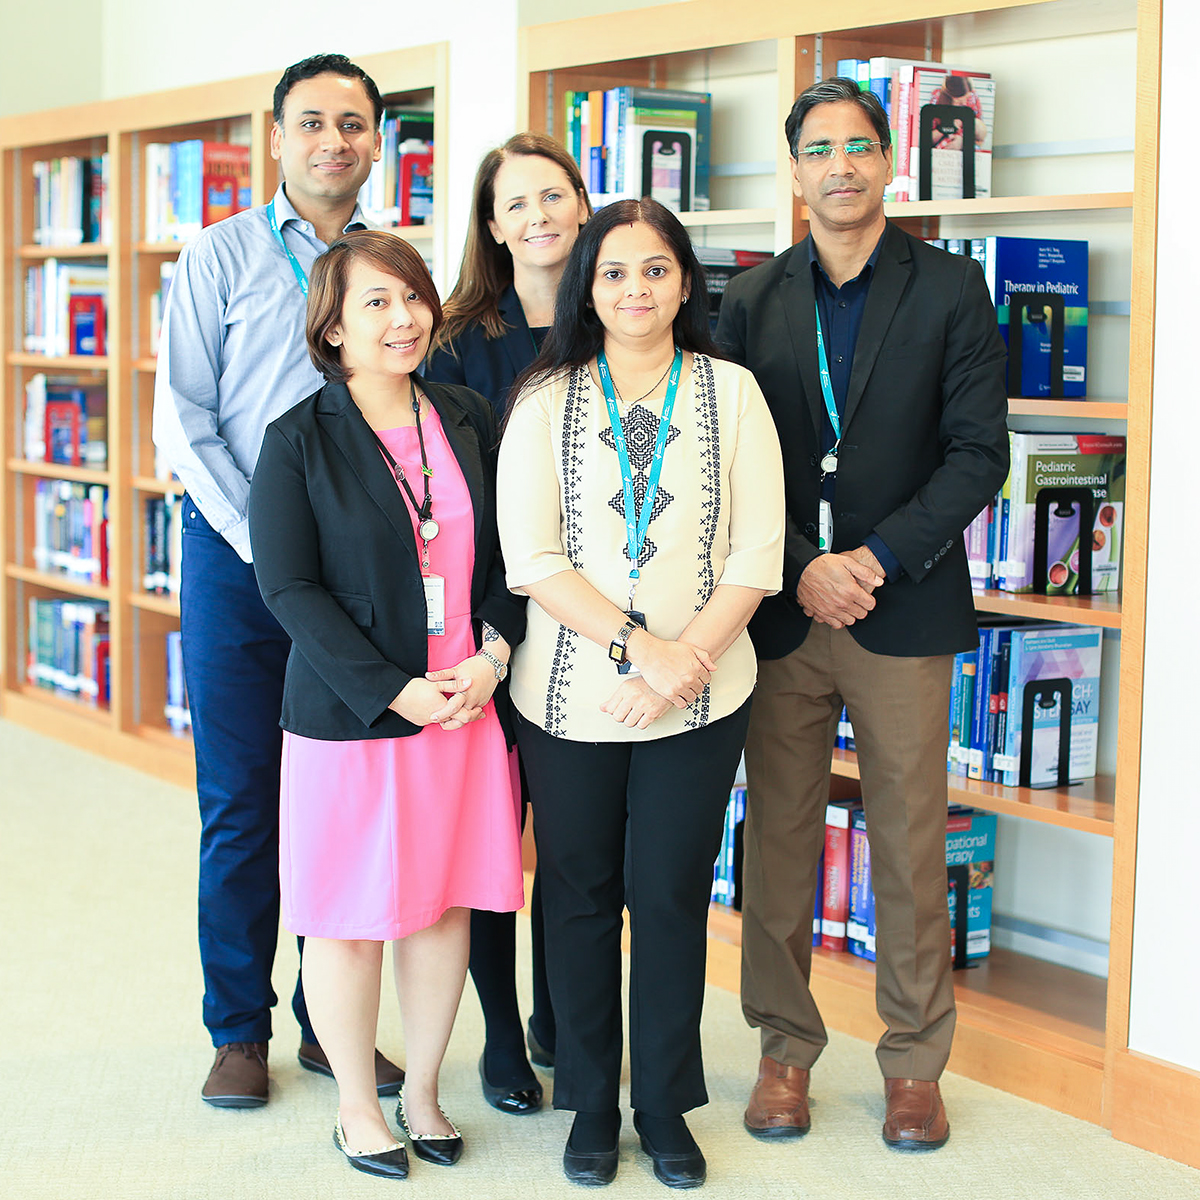 Clinical Library Team's picture